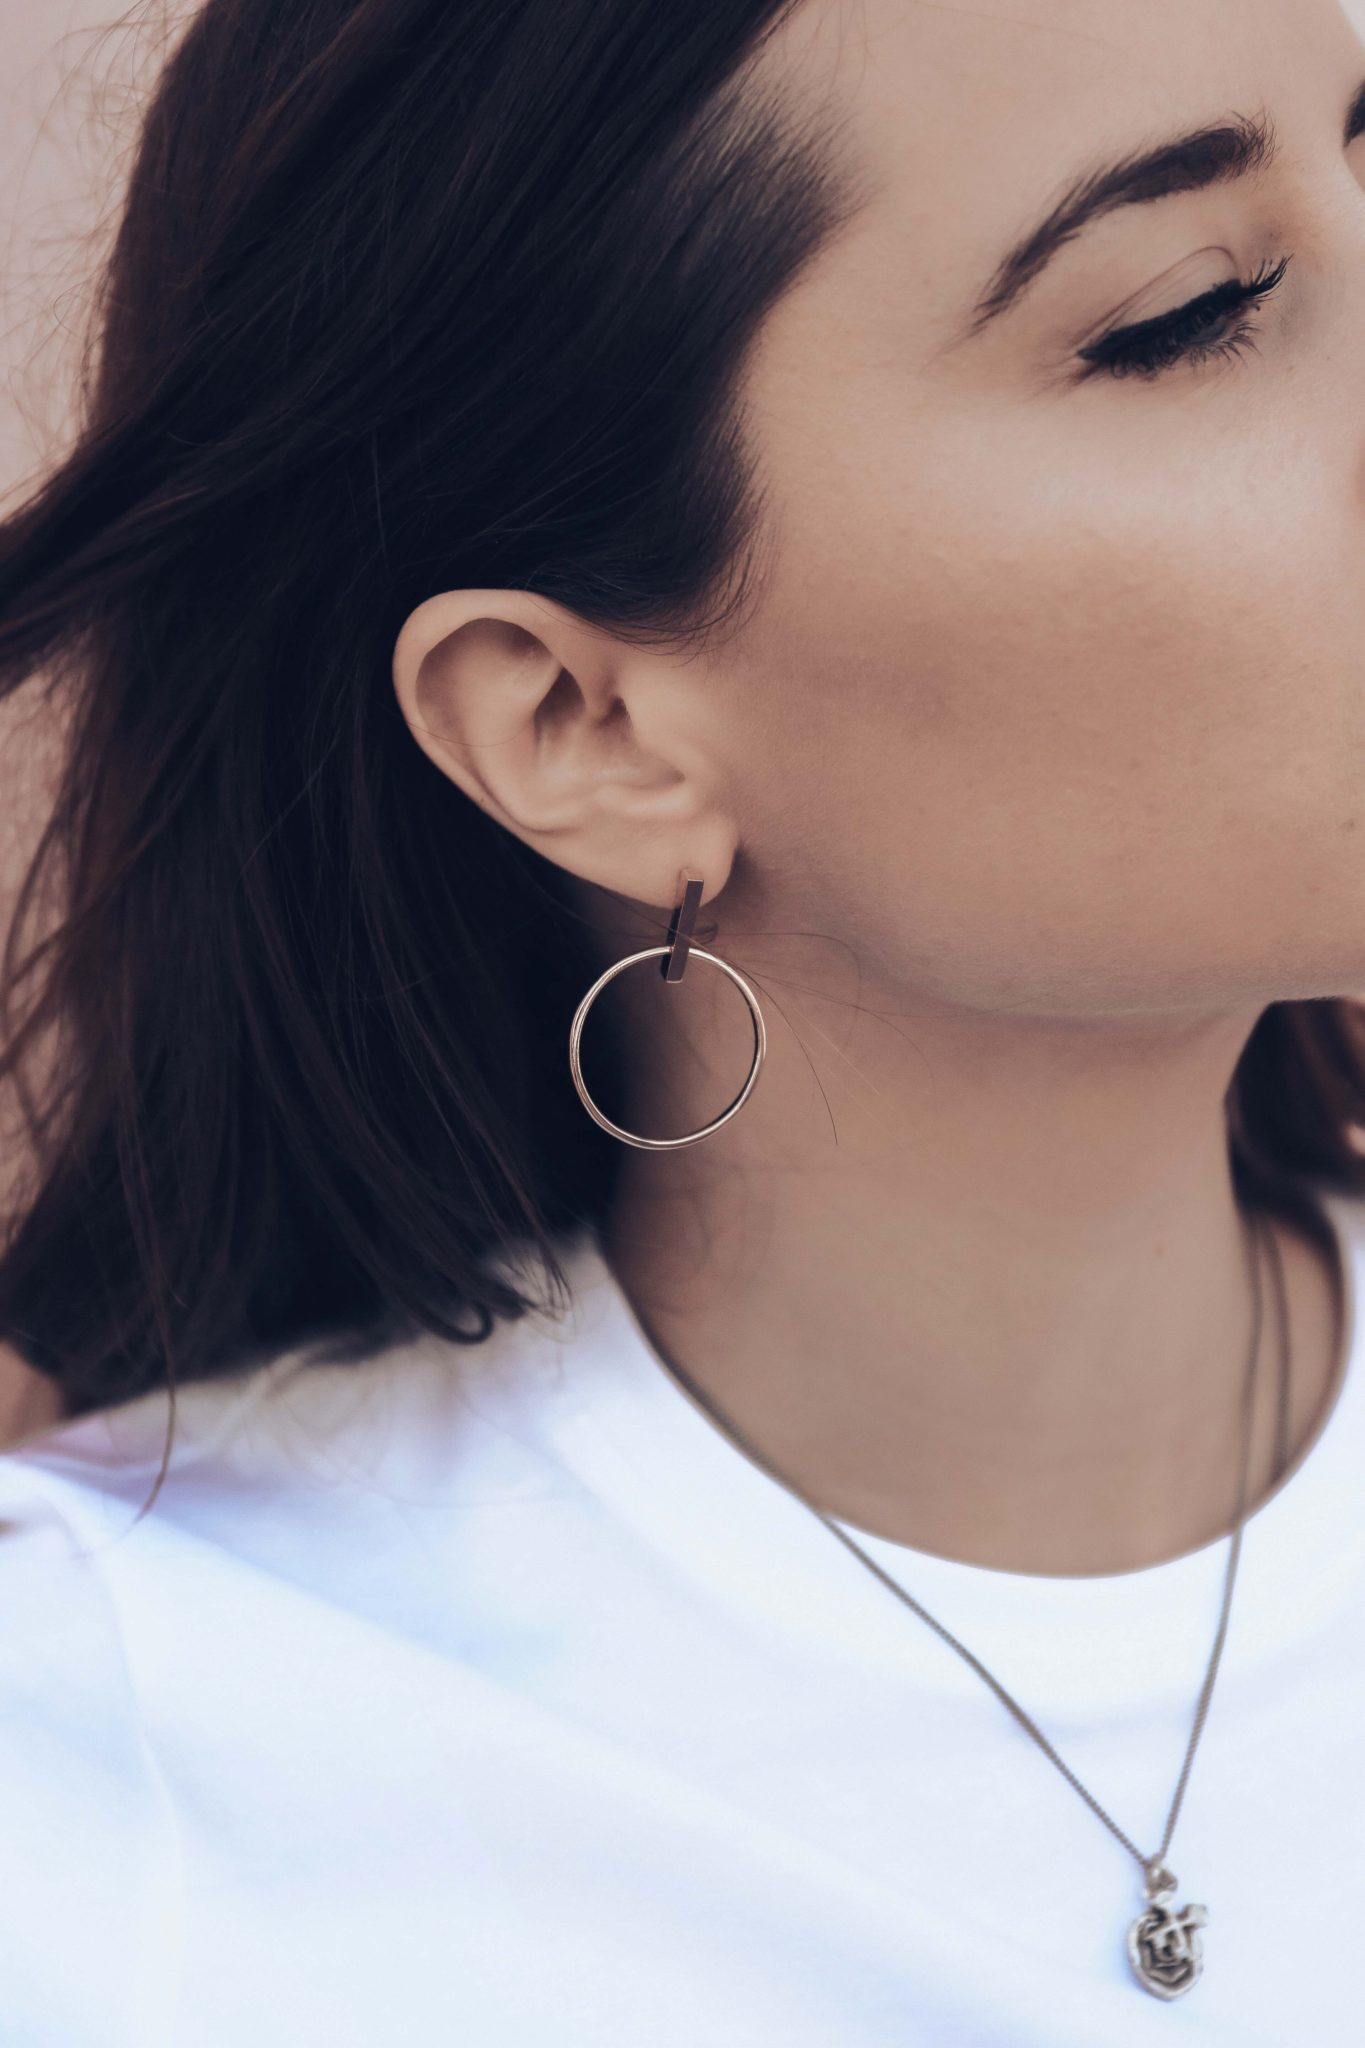 Luxury Minimal Jewels: Aurate New York. Fine Jewelry Online Store you need to know for special occasion jewelry gift - More on Houseofcomil.com